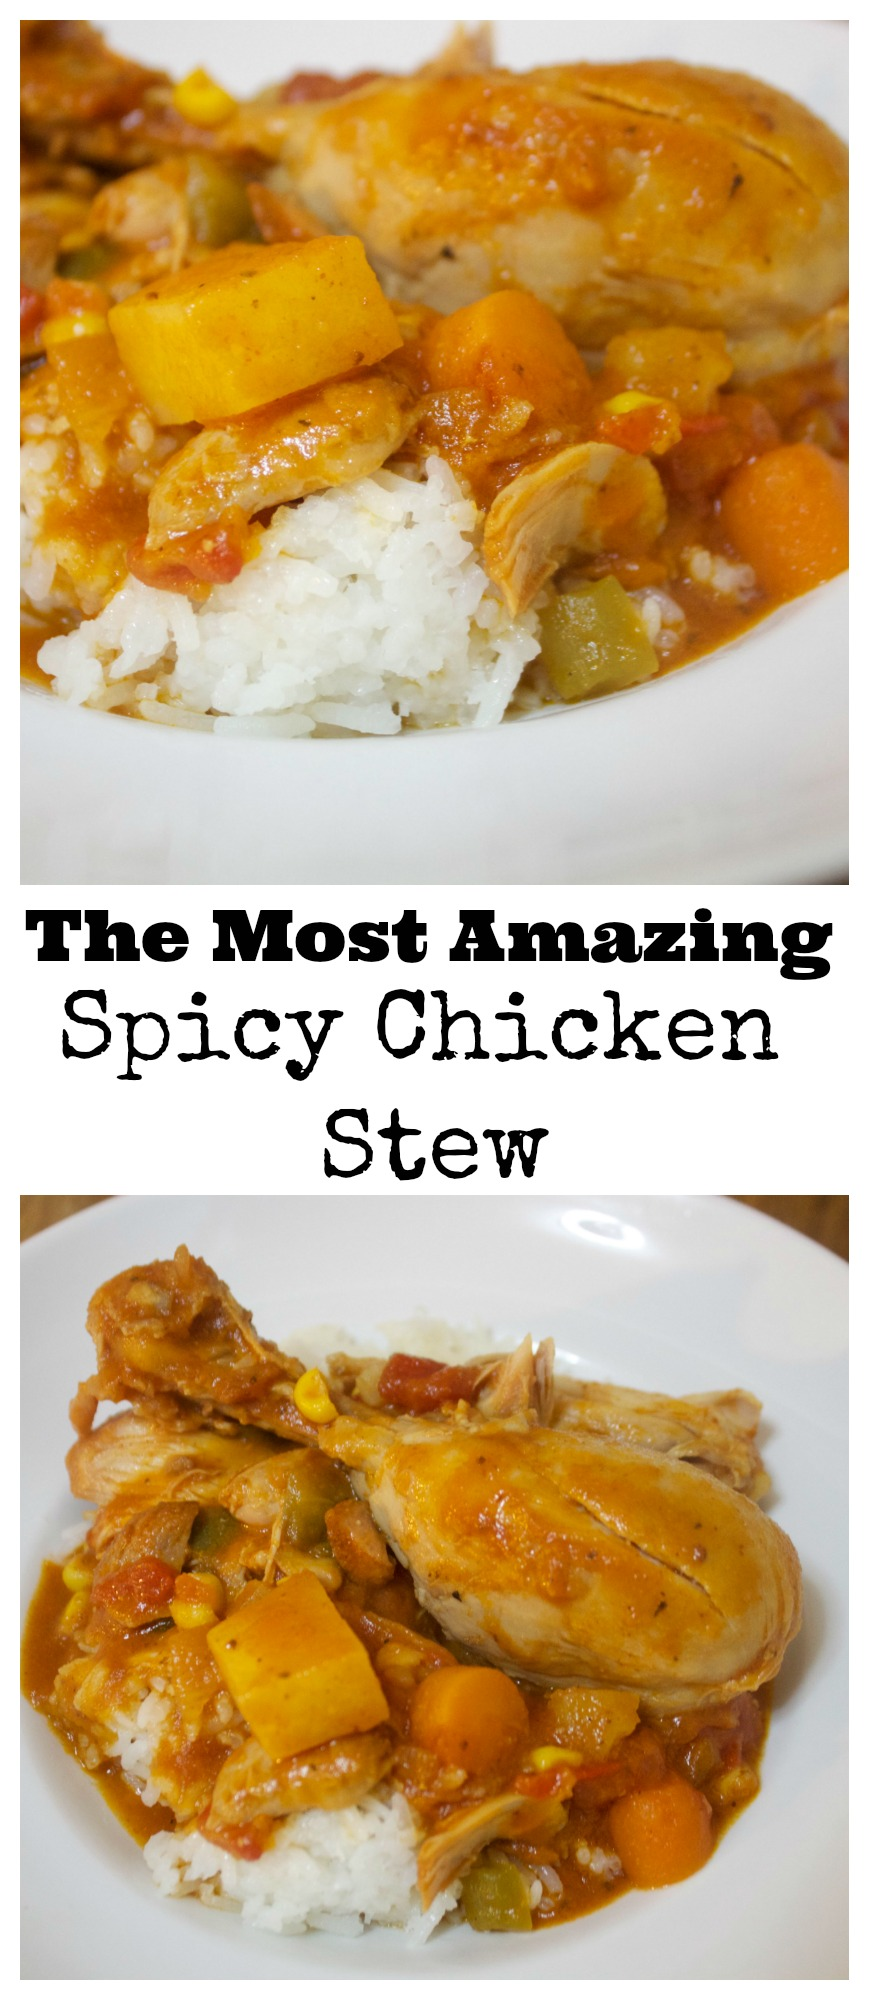 The Most Amazing Spicy Chicken Stew | Recipe with Video | Cooked by Julie